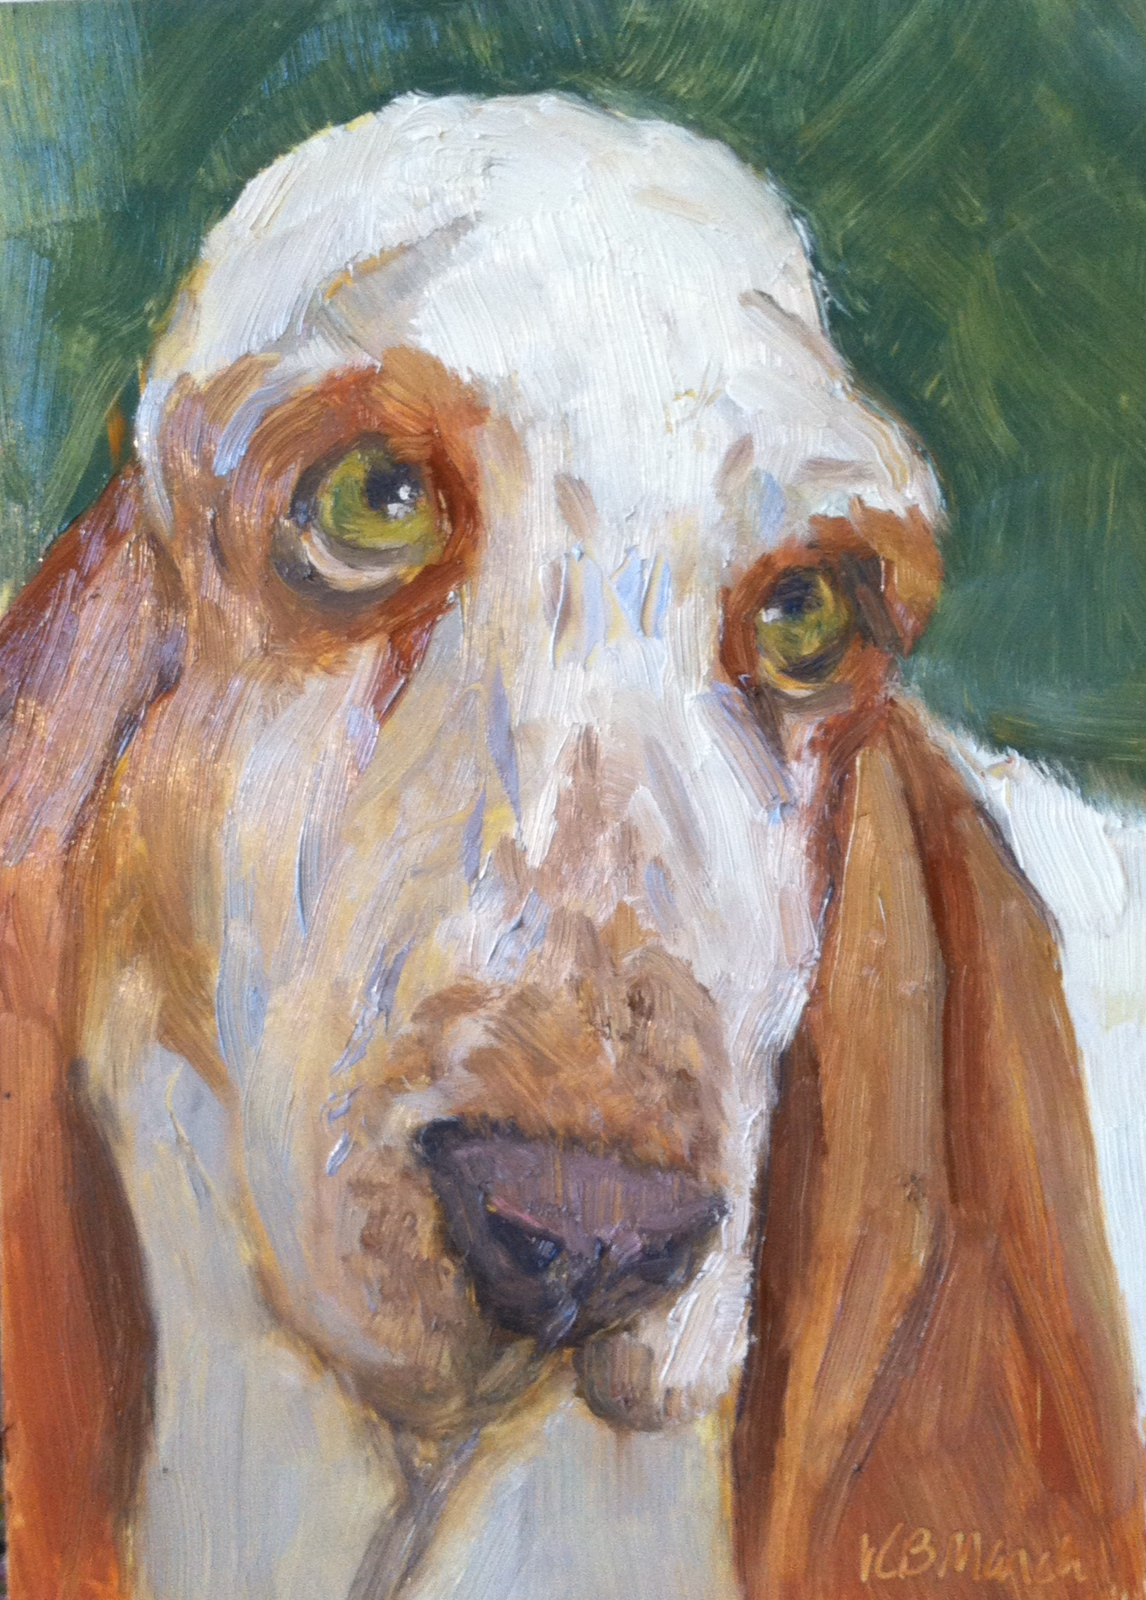 Pet Portraits - Send me a photo of your favorite pet. Your portrait will be ready in 2-3 wks.     -